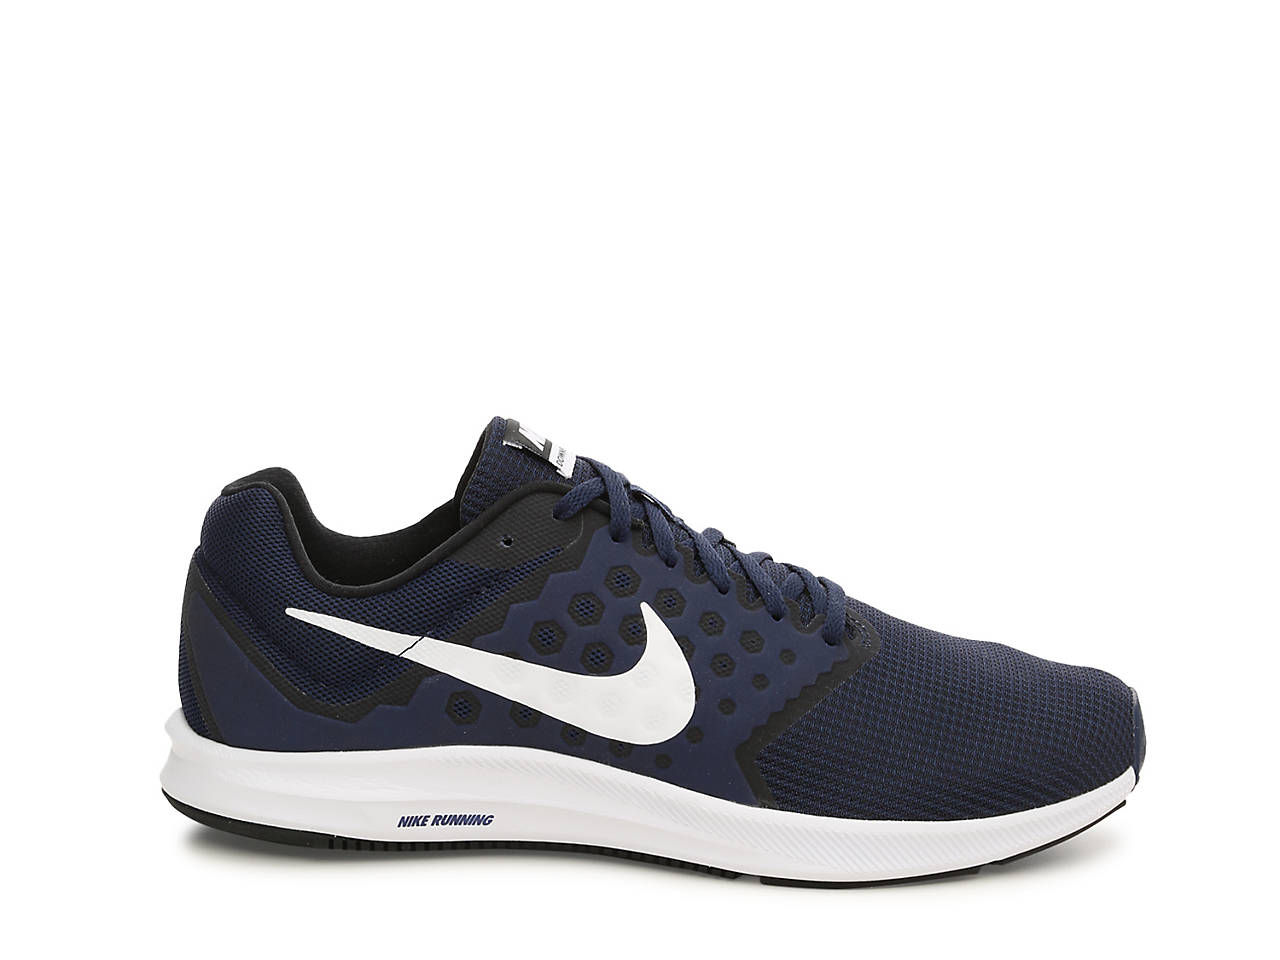 0c948874323c1 Nike Downshifter 7 Lightweight Running Shoe - Men s Men s Shoes